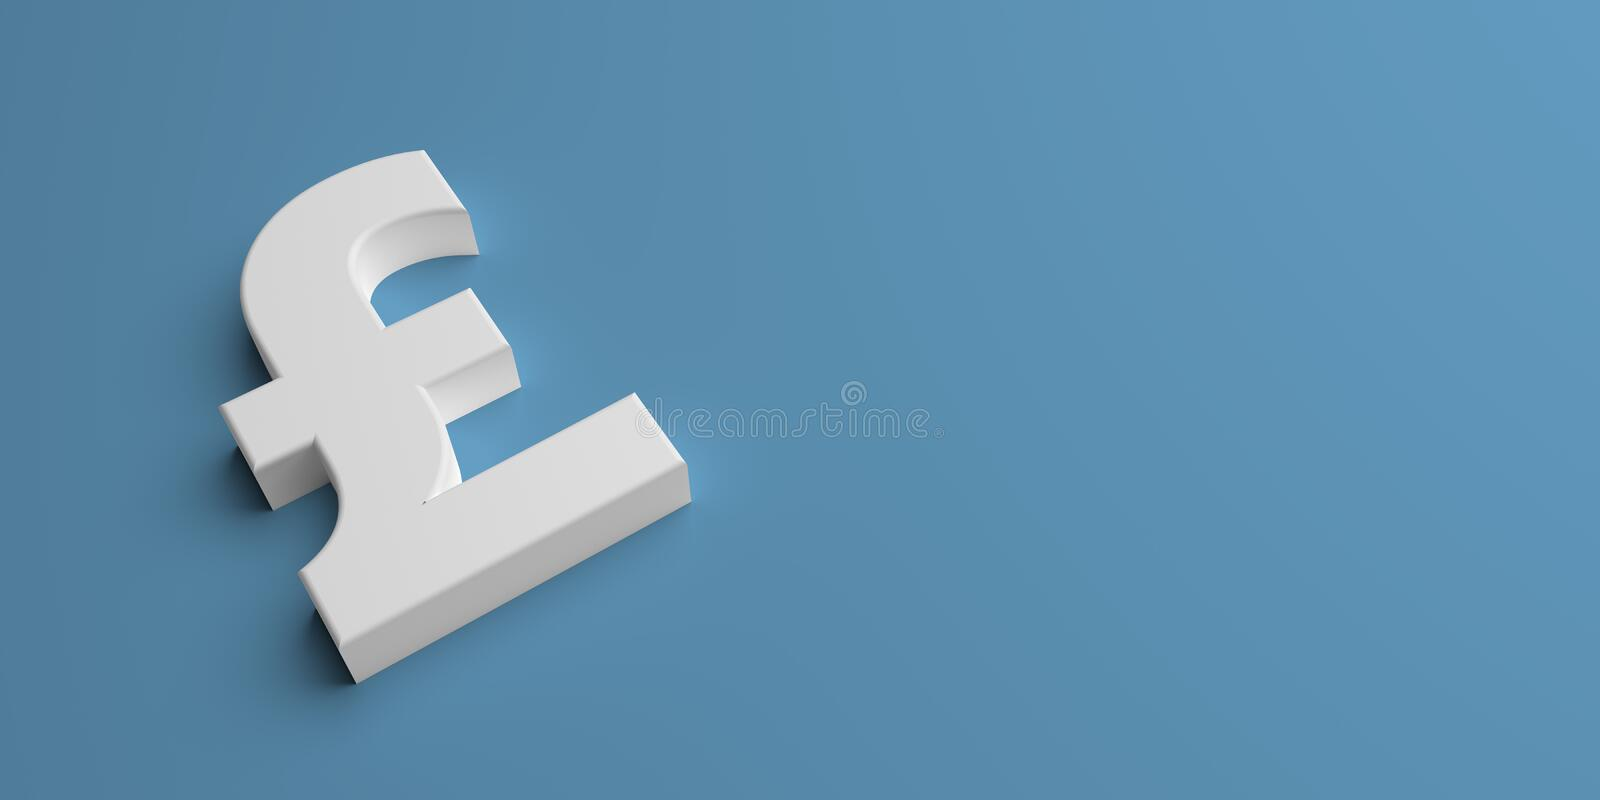 Abstract pound symbol at finance - illustration stock illustration